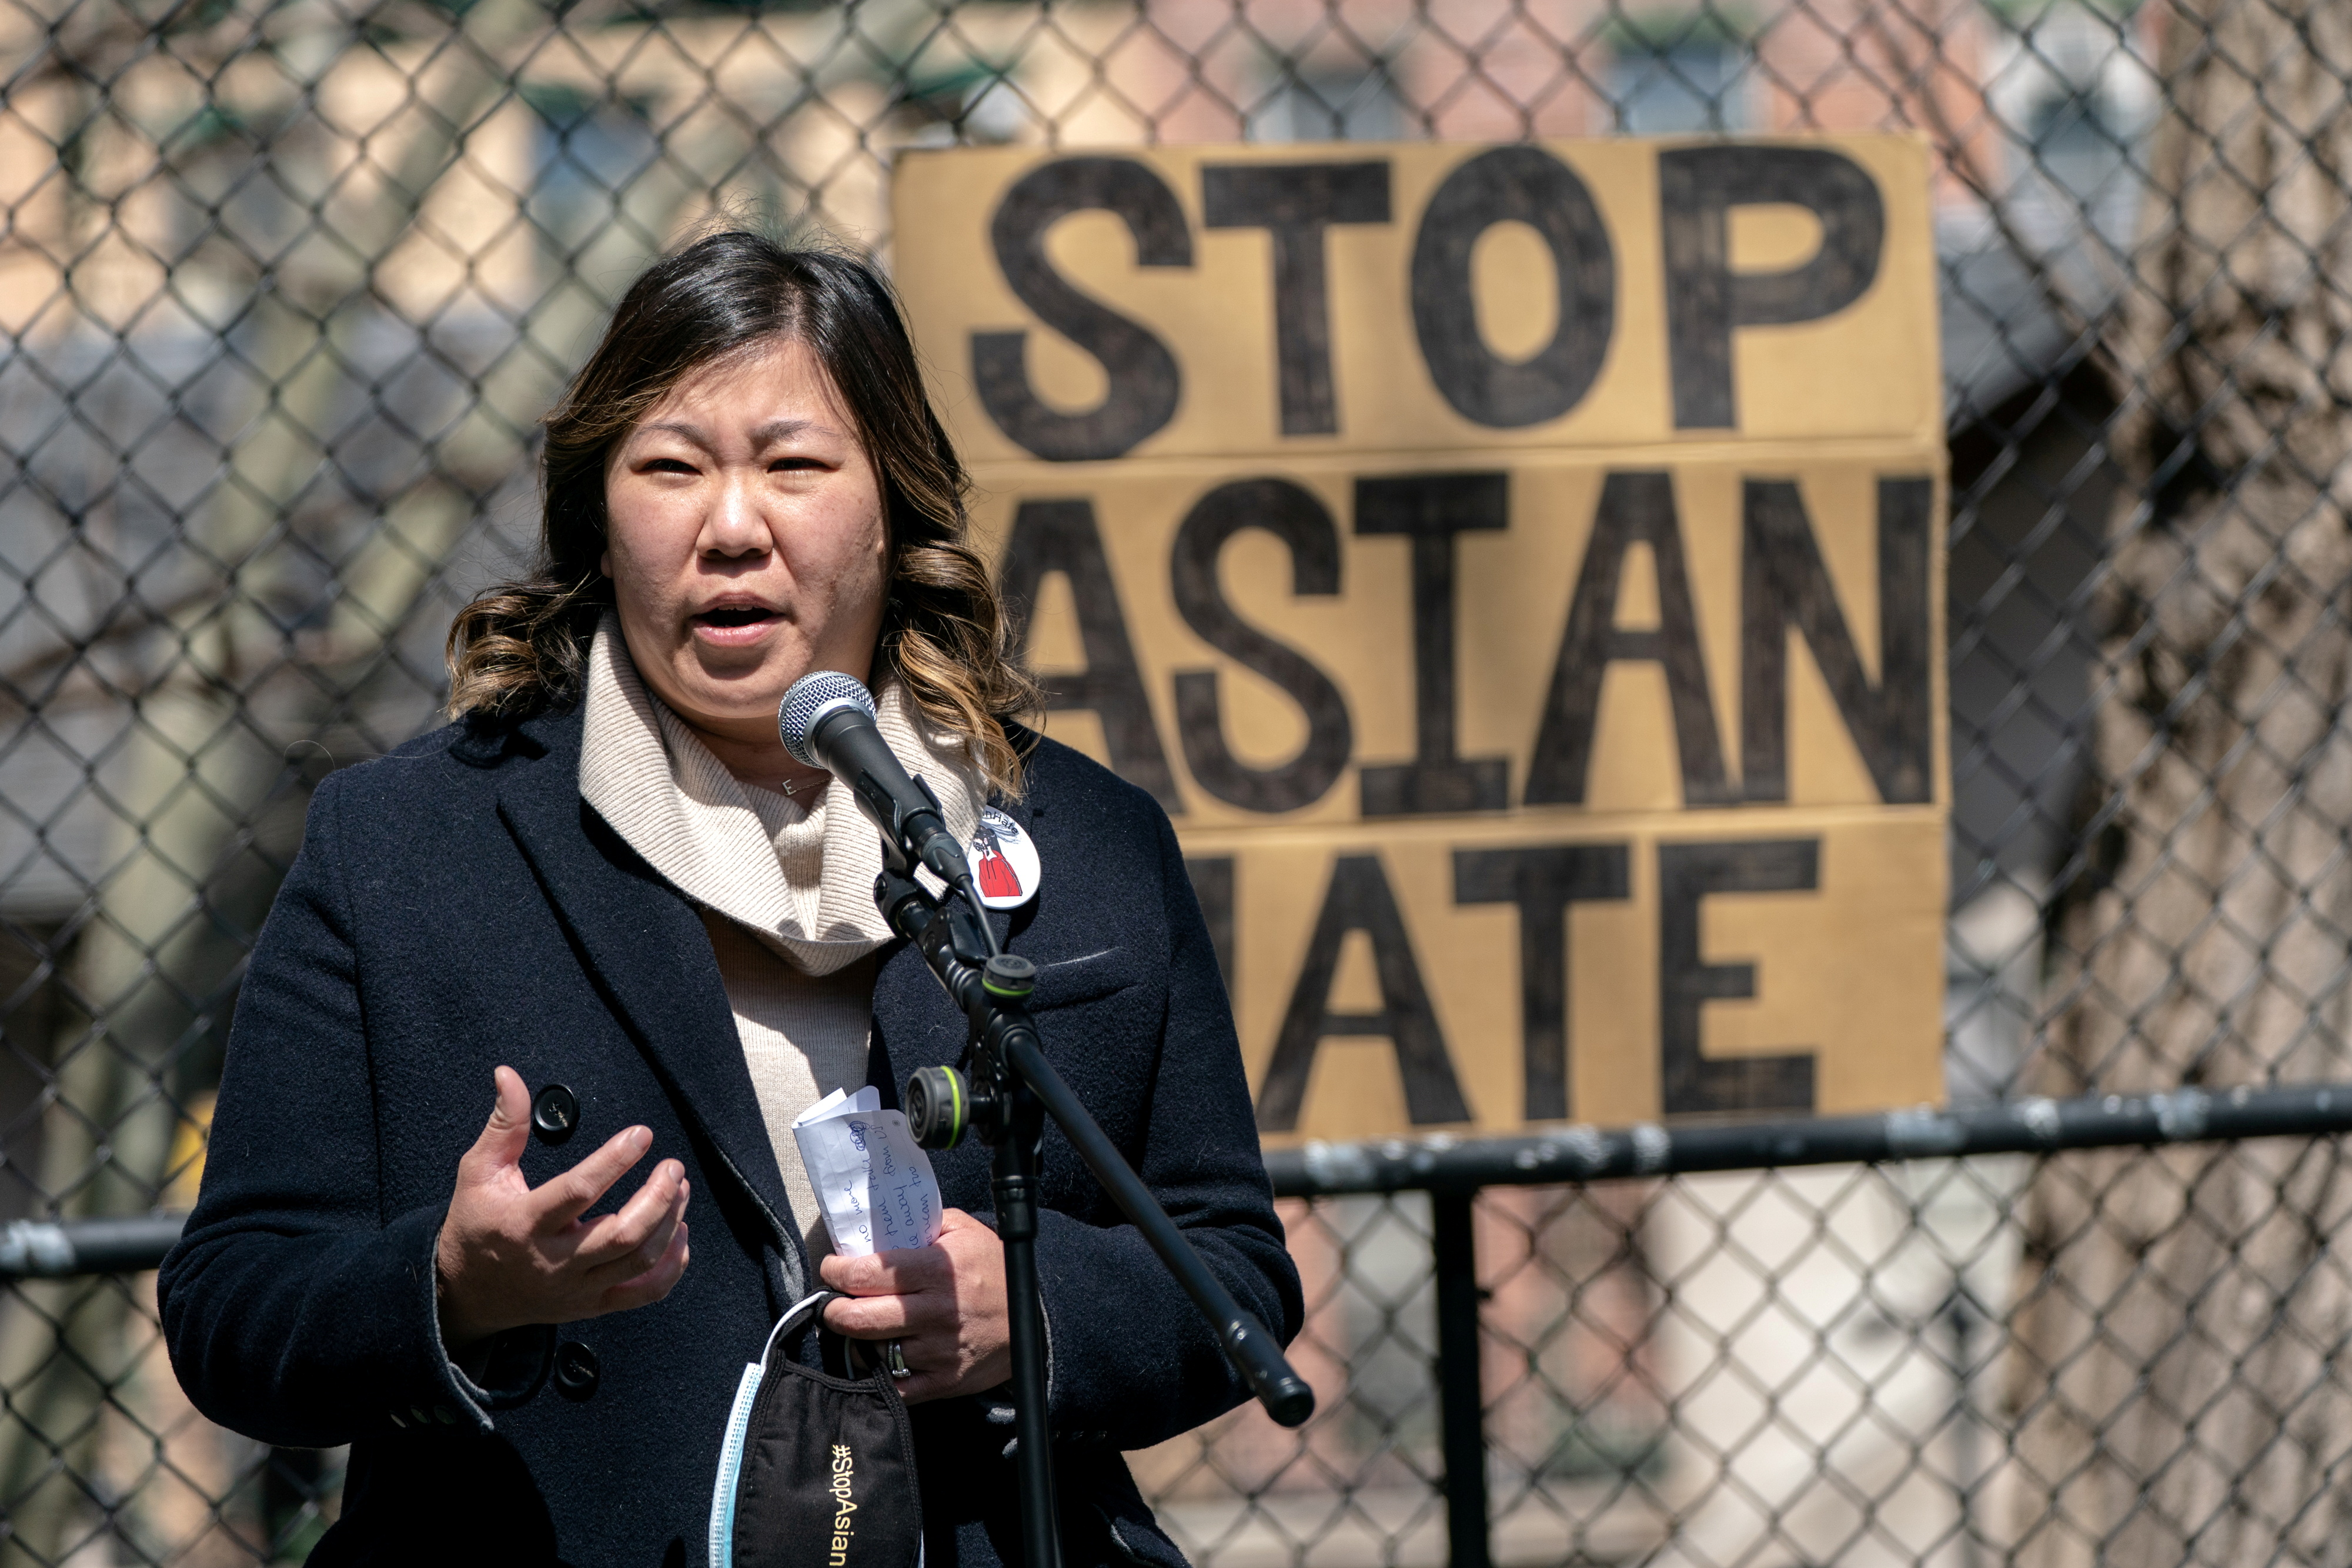 Congresswoman Grace Meng speaks during a Stop Asian Hate rally at Columbus Park in New York City, U.S., April 3, 2021. REUTERS/Jeenah Moon/File Photo